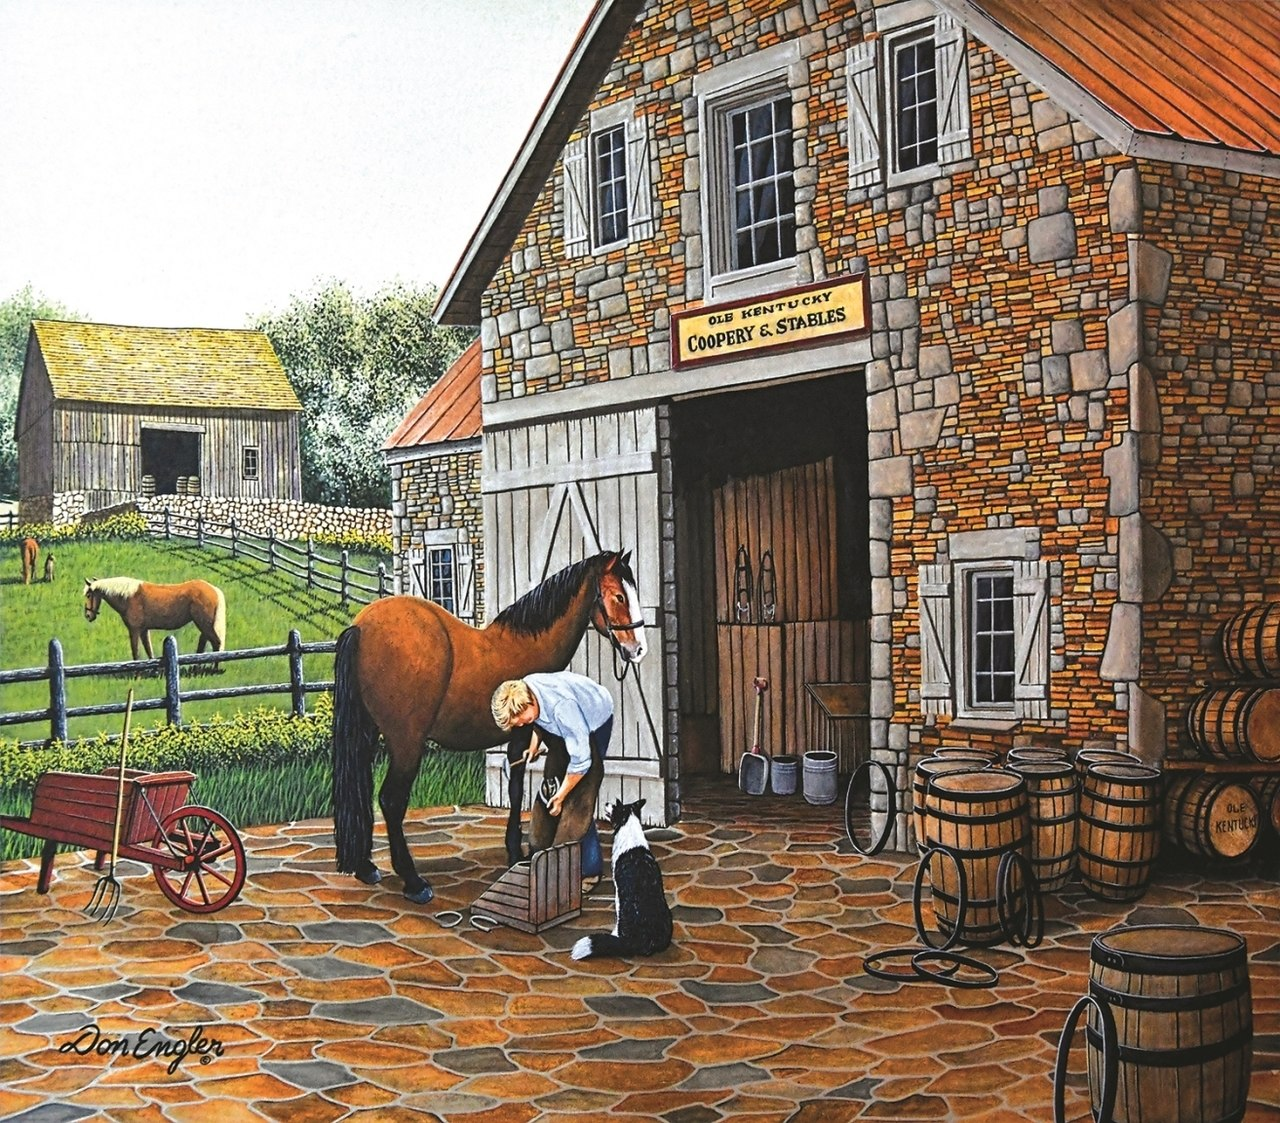 Coppery and Stables - 300pc Jigsaw Puzzle By Sunsout  			  					NEW